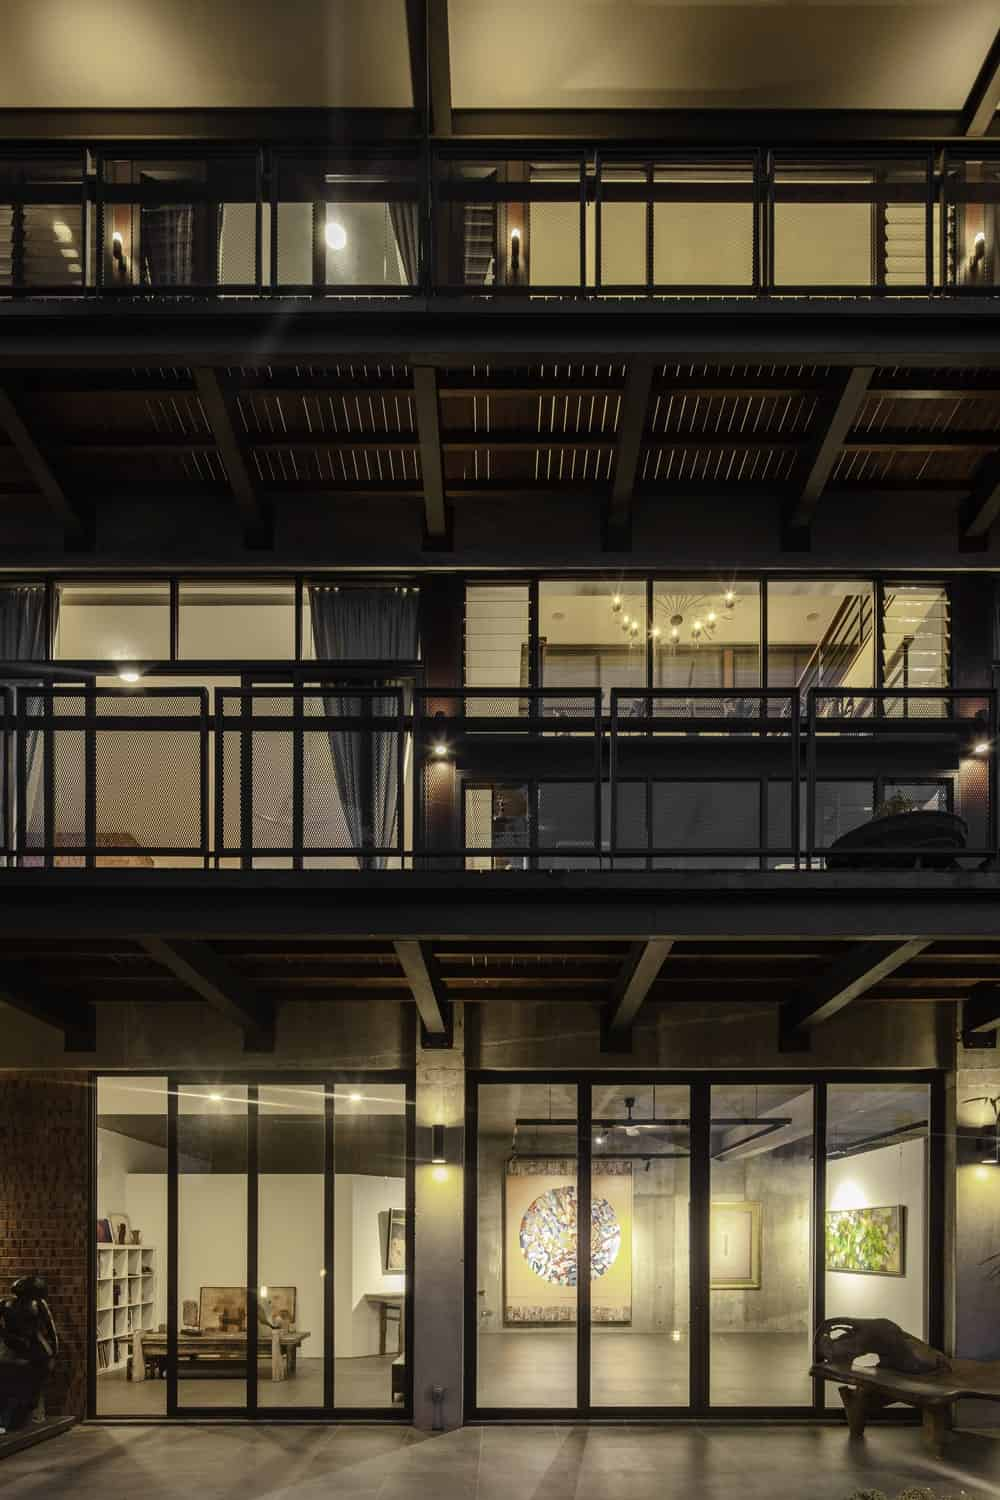 This nighttime view of the house glass walls showcases its warm glow that comes from the interior lights.